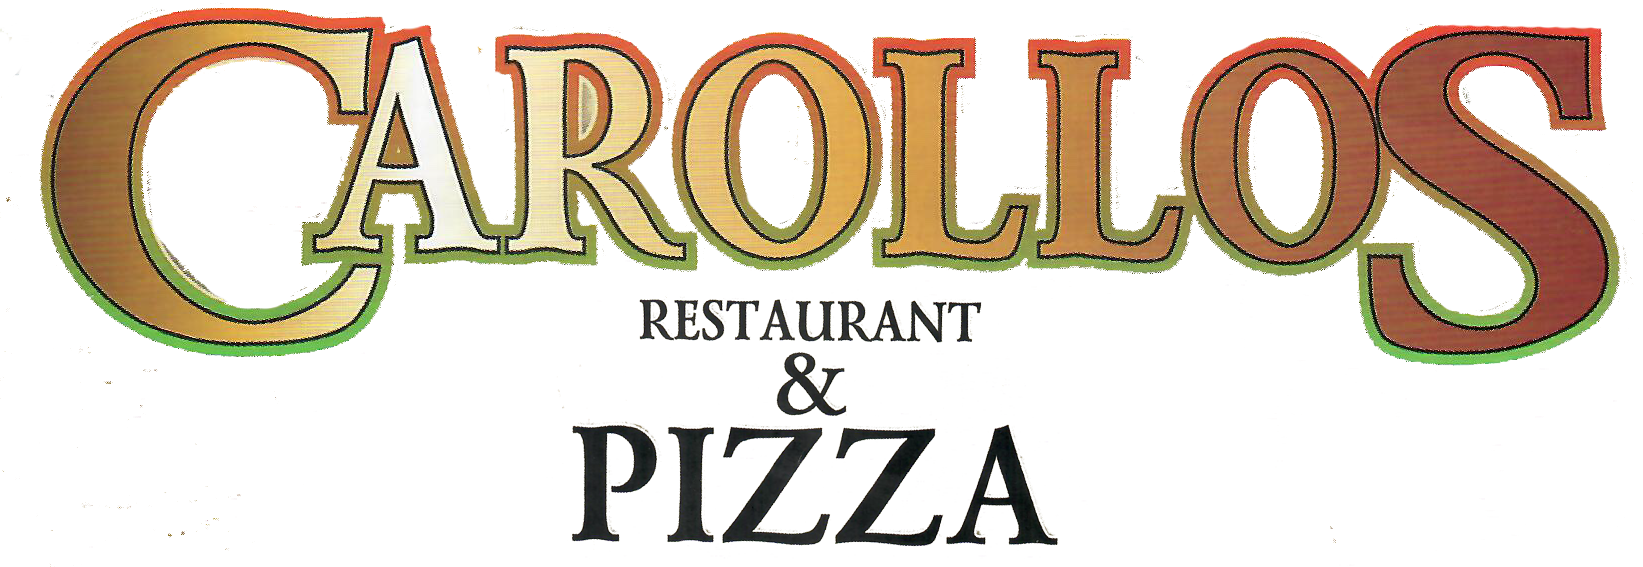 Carollos Restaurant & Pizza